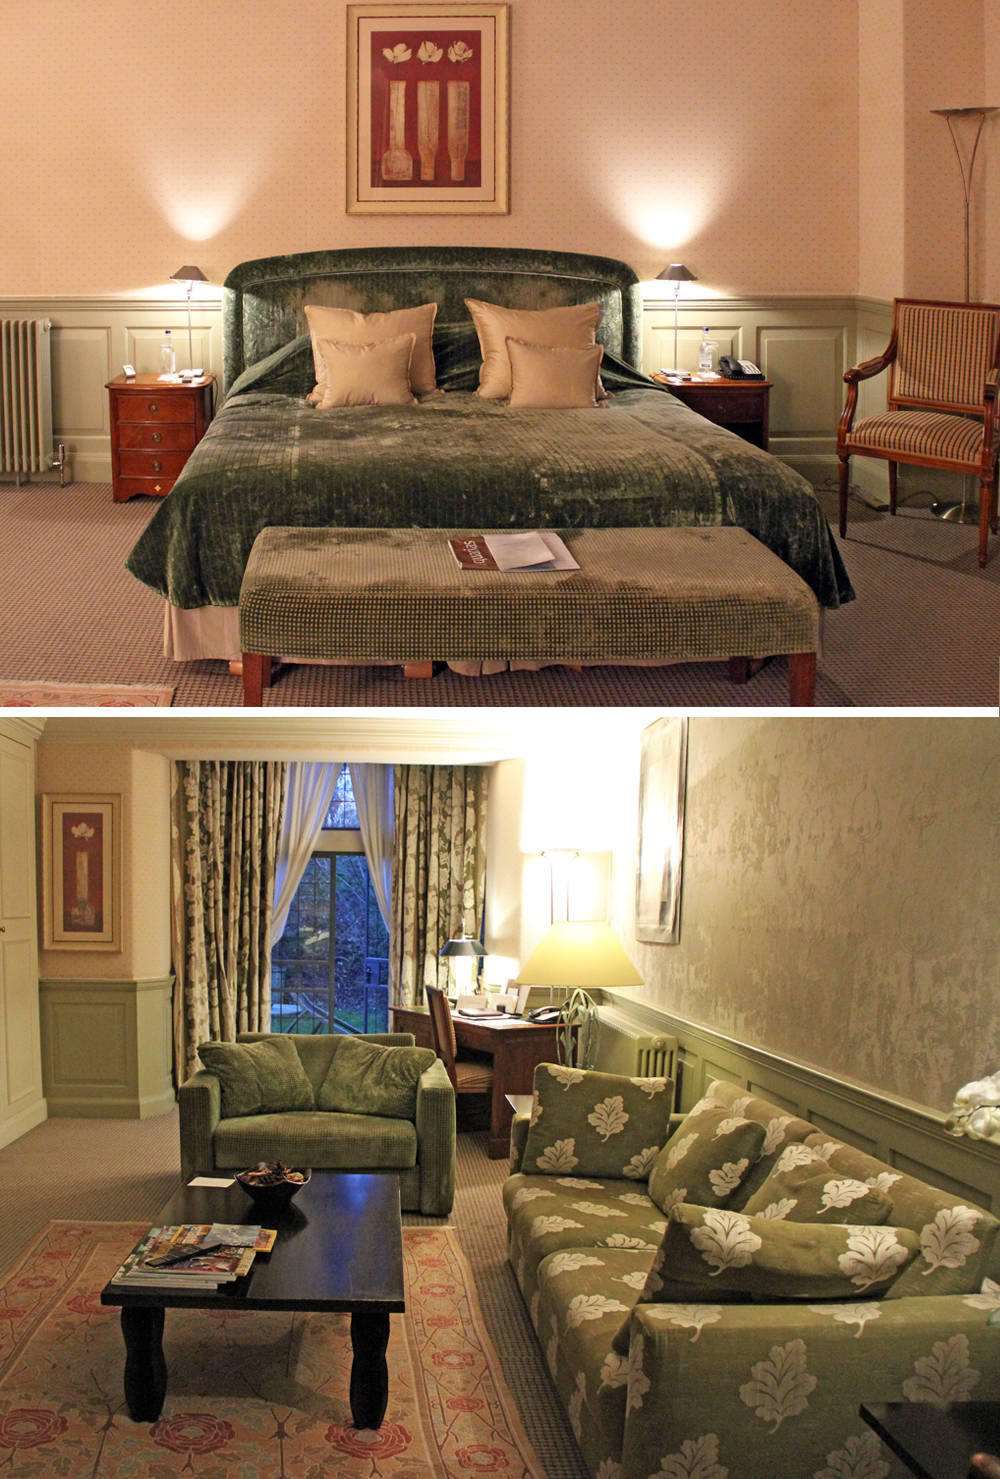 whatley manor - room 4